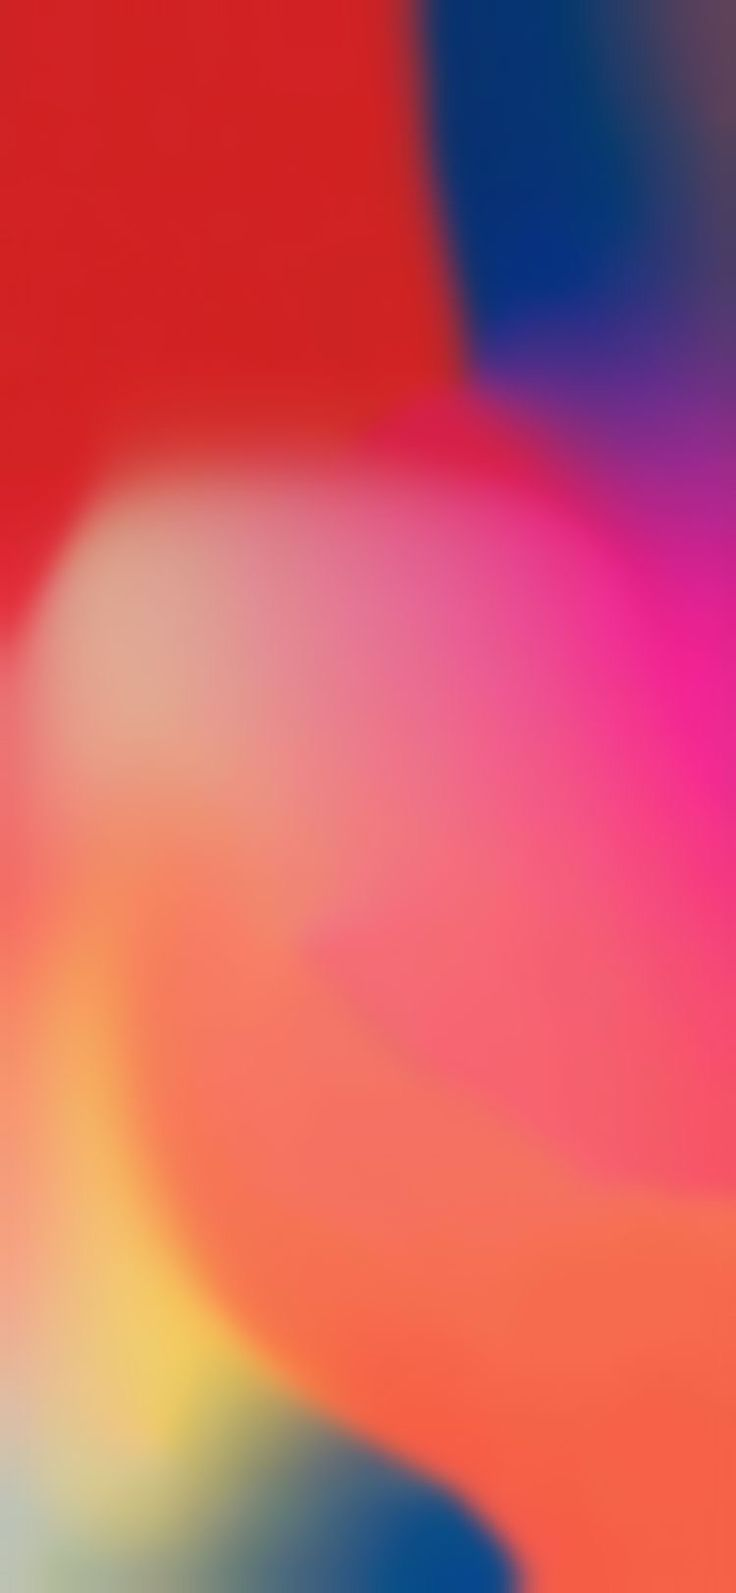 Abstract HD Wallpapers 832391943603973700 1